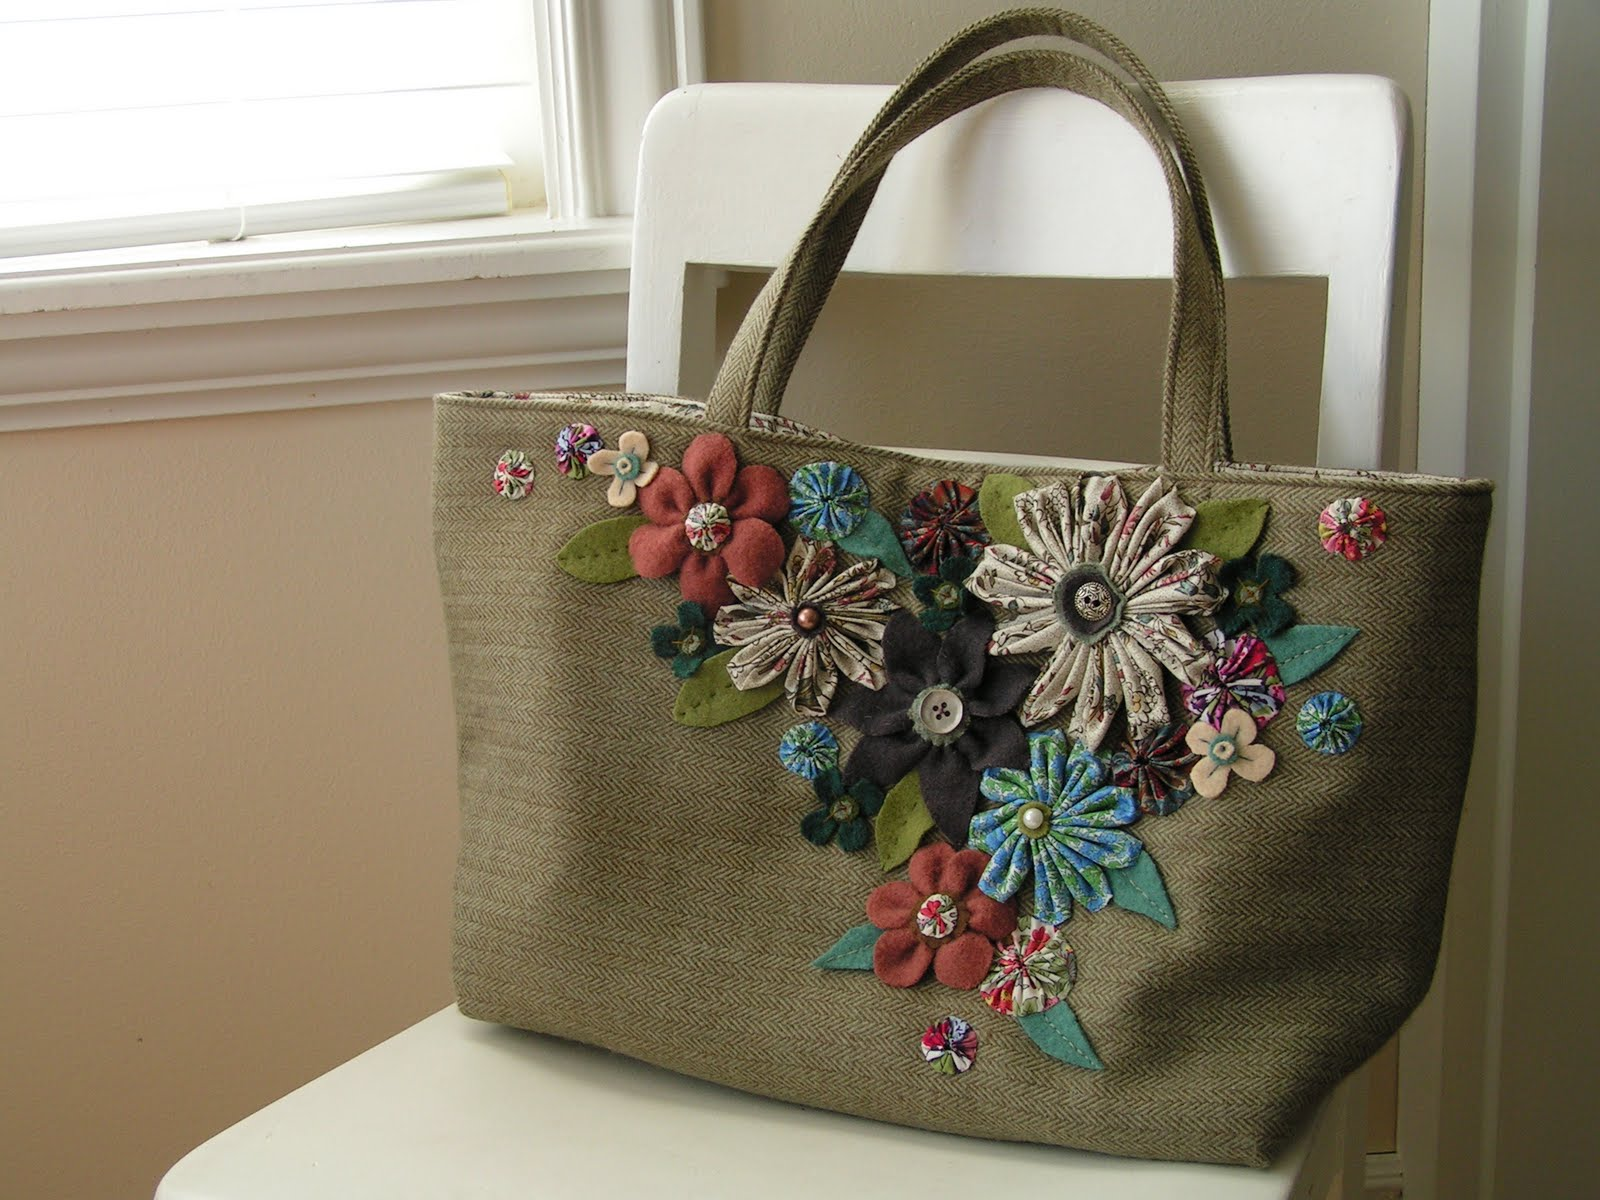 How To Make Fabric Clutches At Home - Coach Crossbody Bag